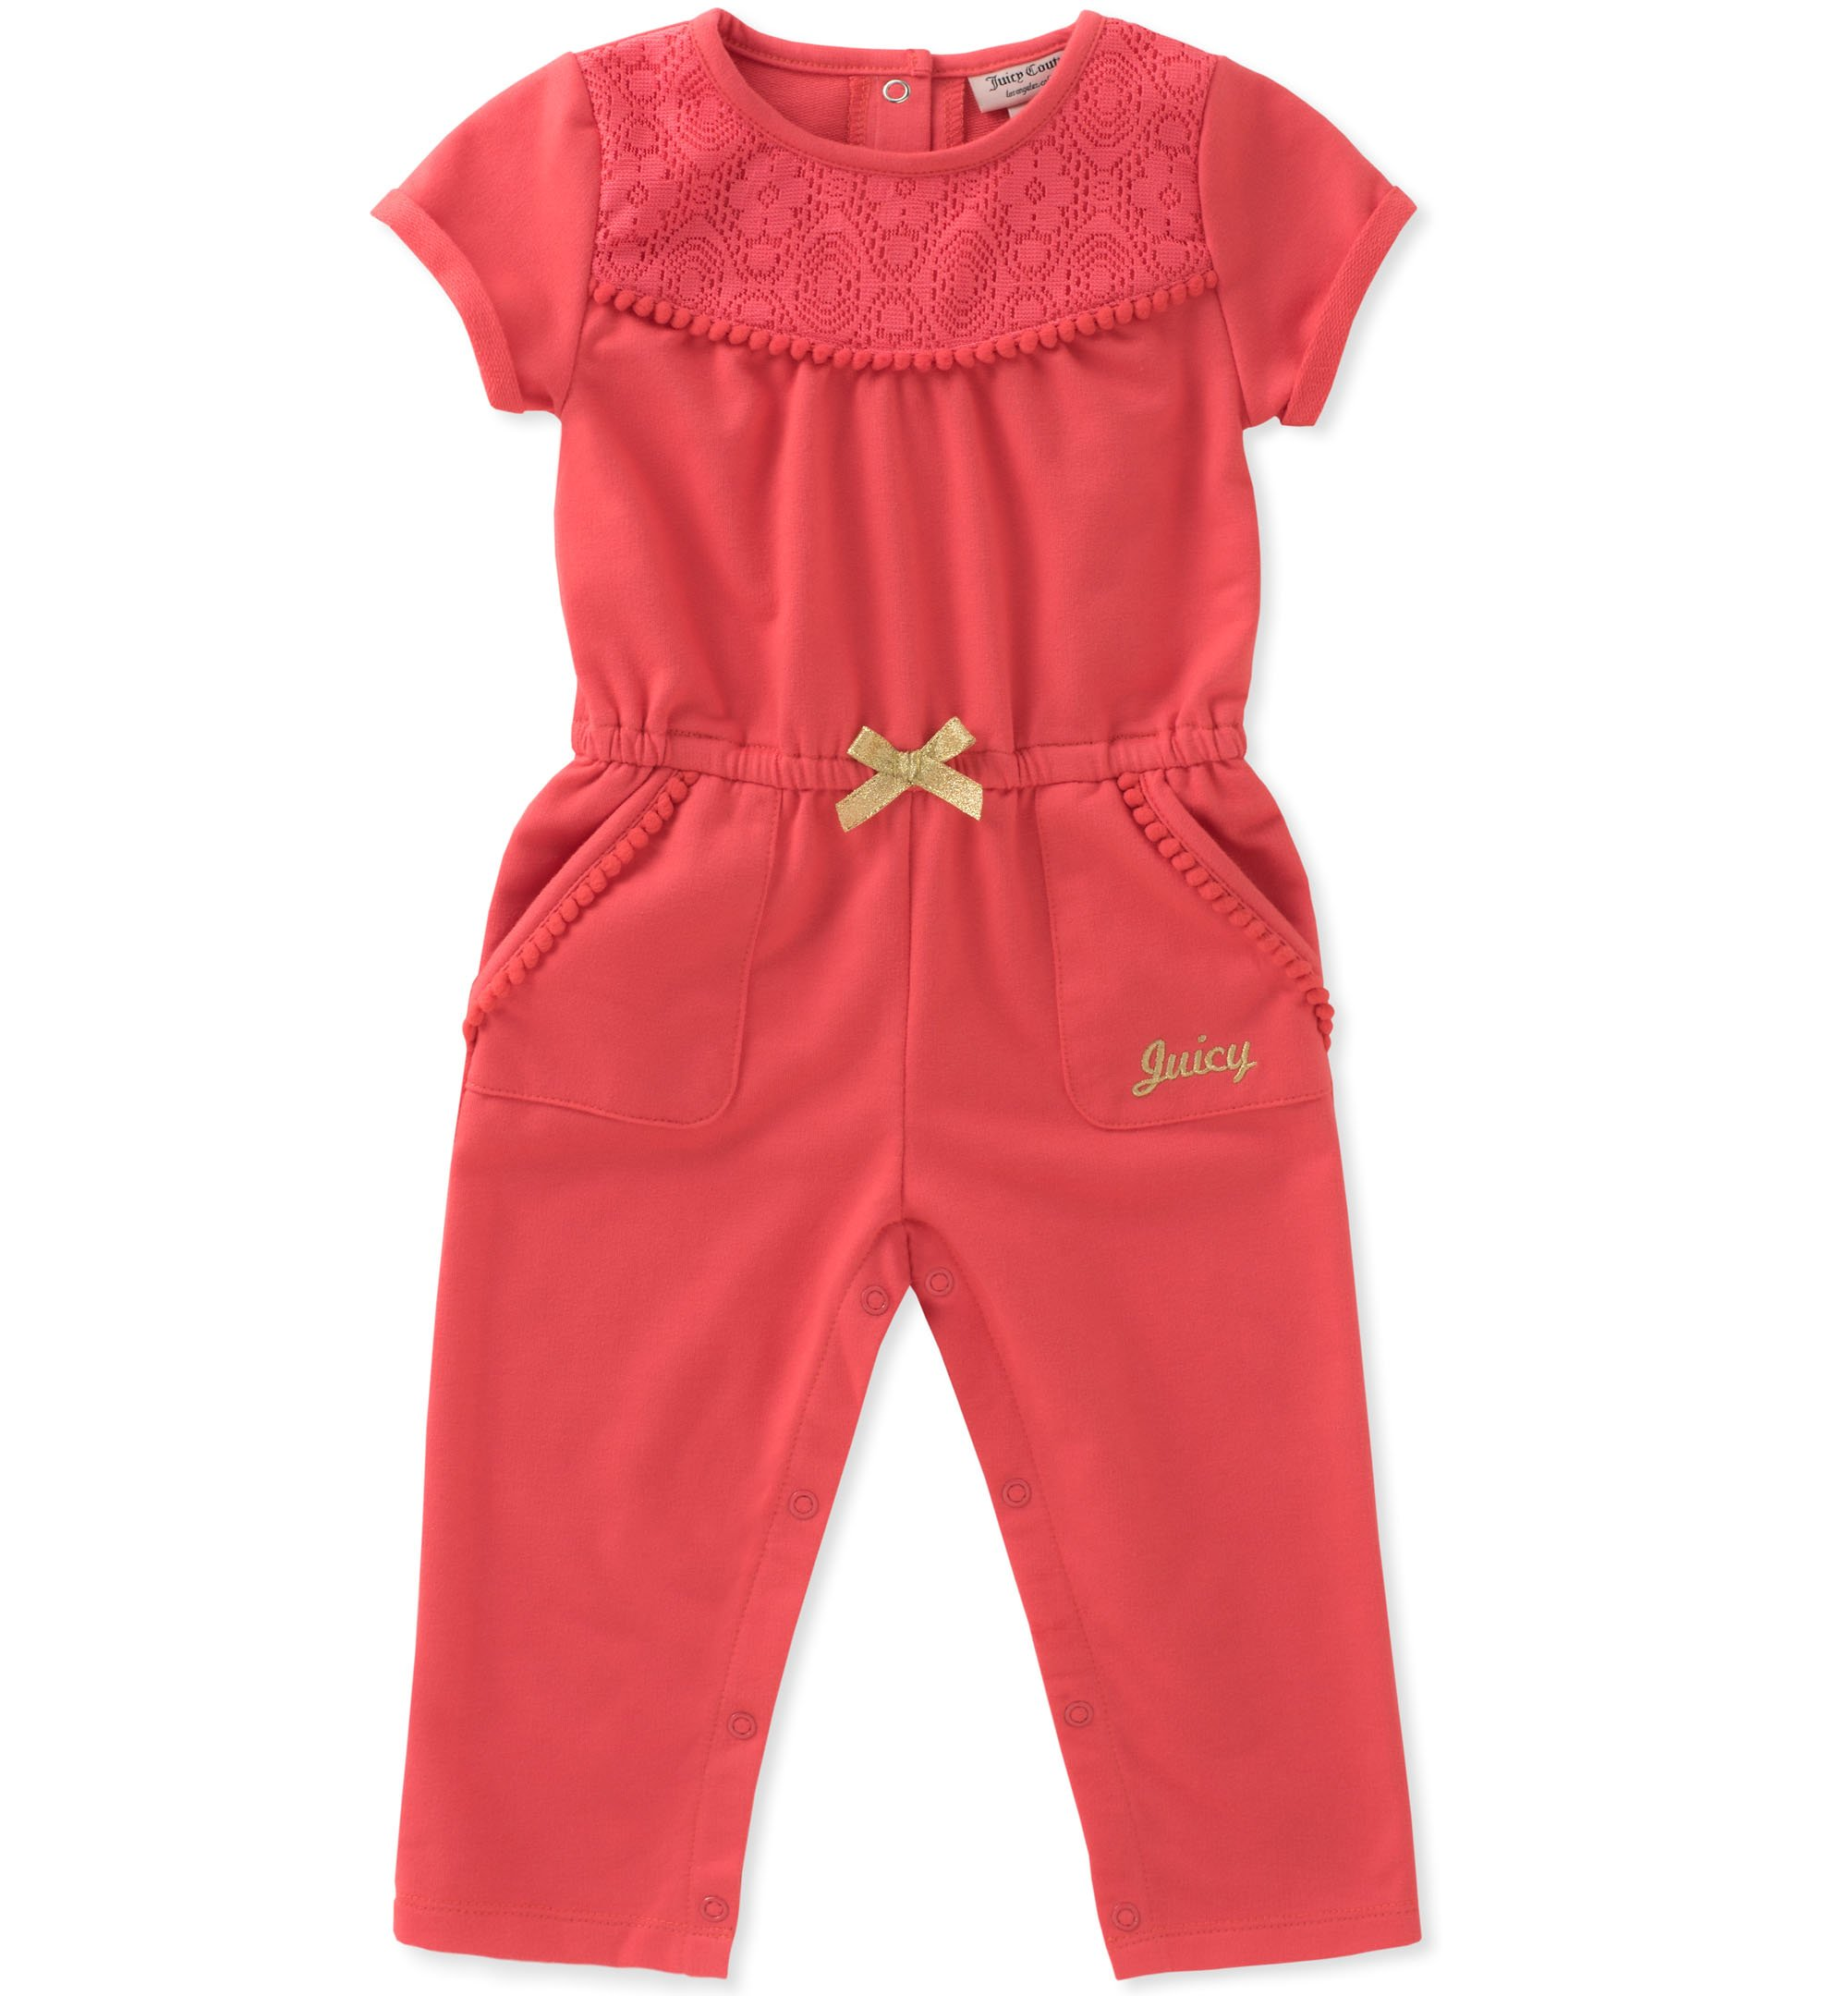 Juicy Couture Baby Girls Jumpsuit, Coral, 12M